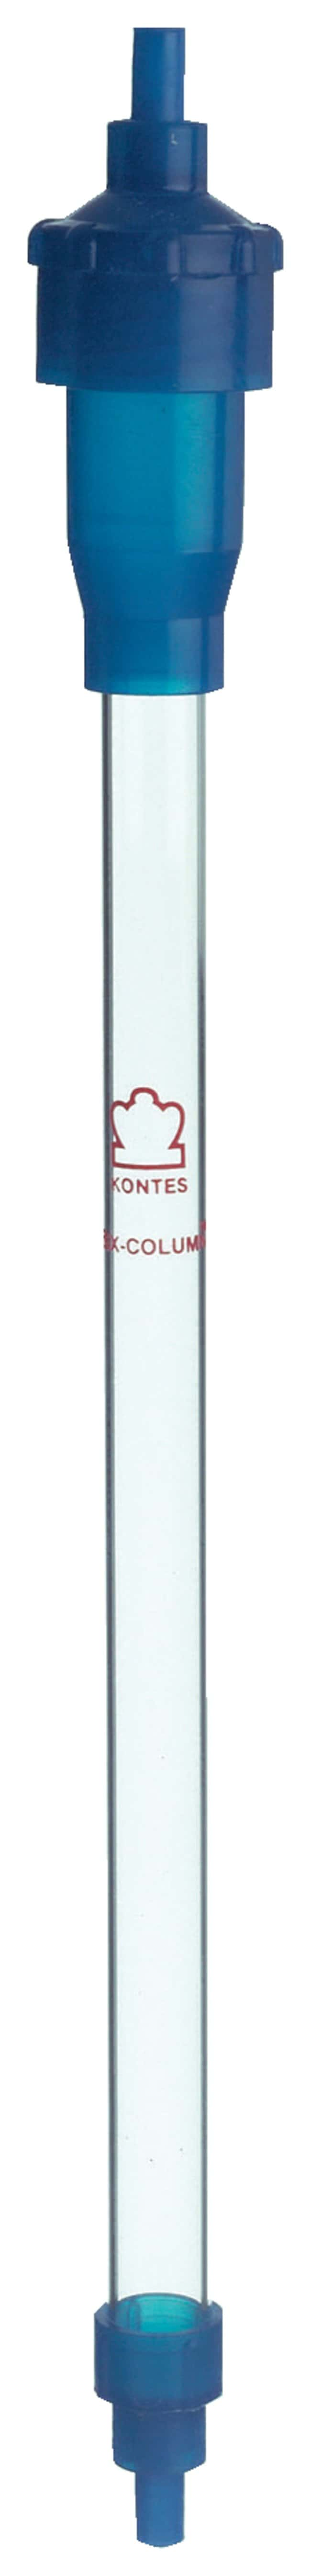 DWK Life Sciences Kimble Kontes FlexColumn Economy Columns :Chromatography:Chromatography